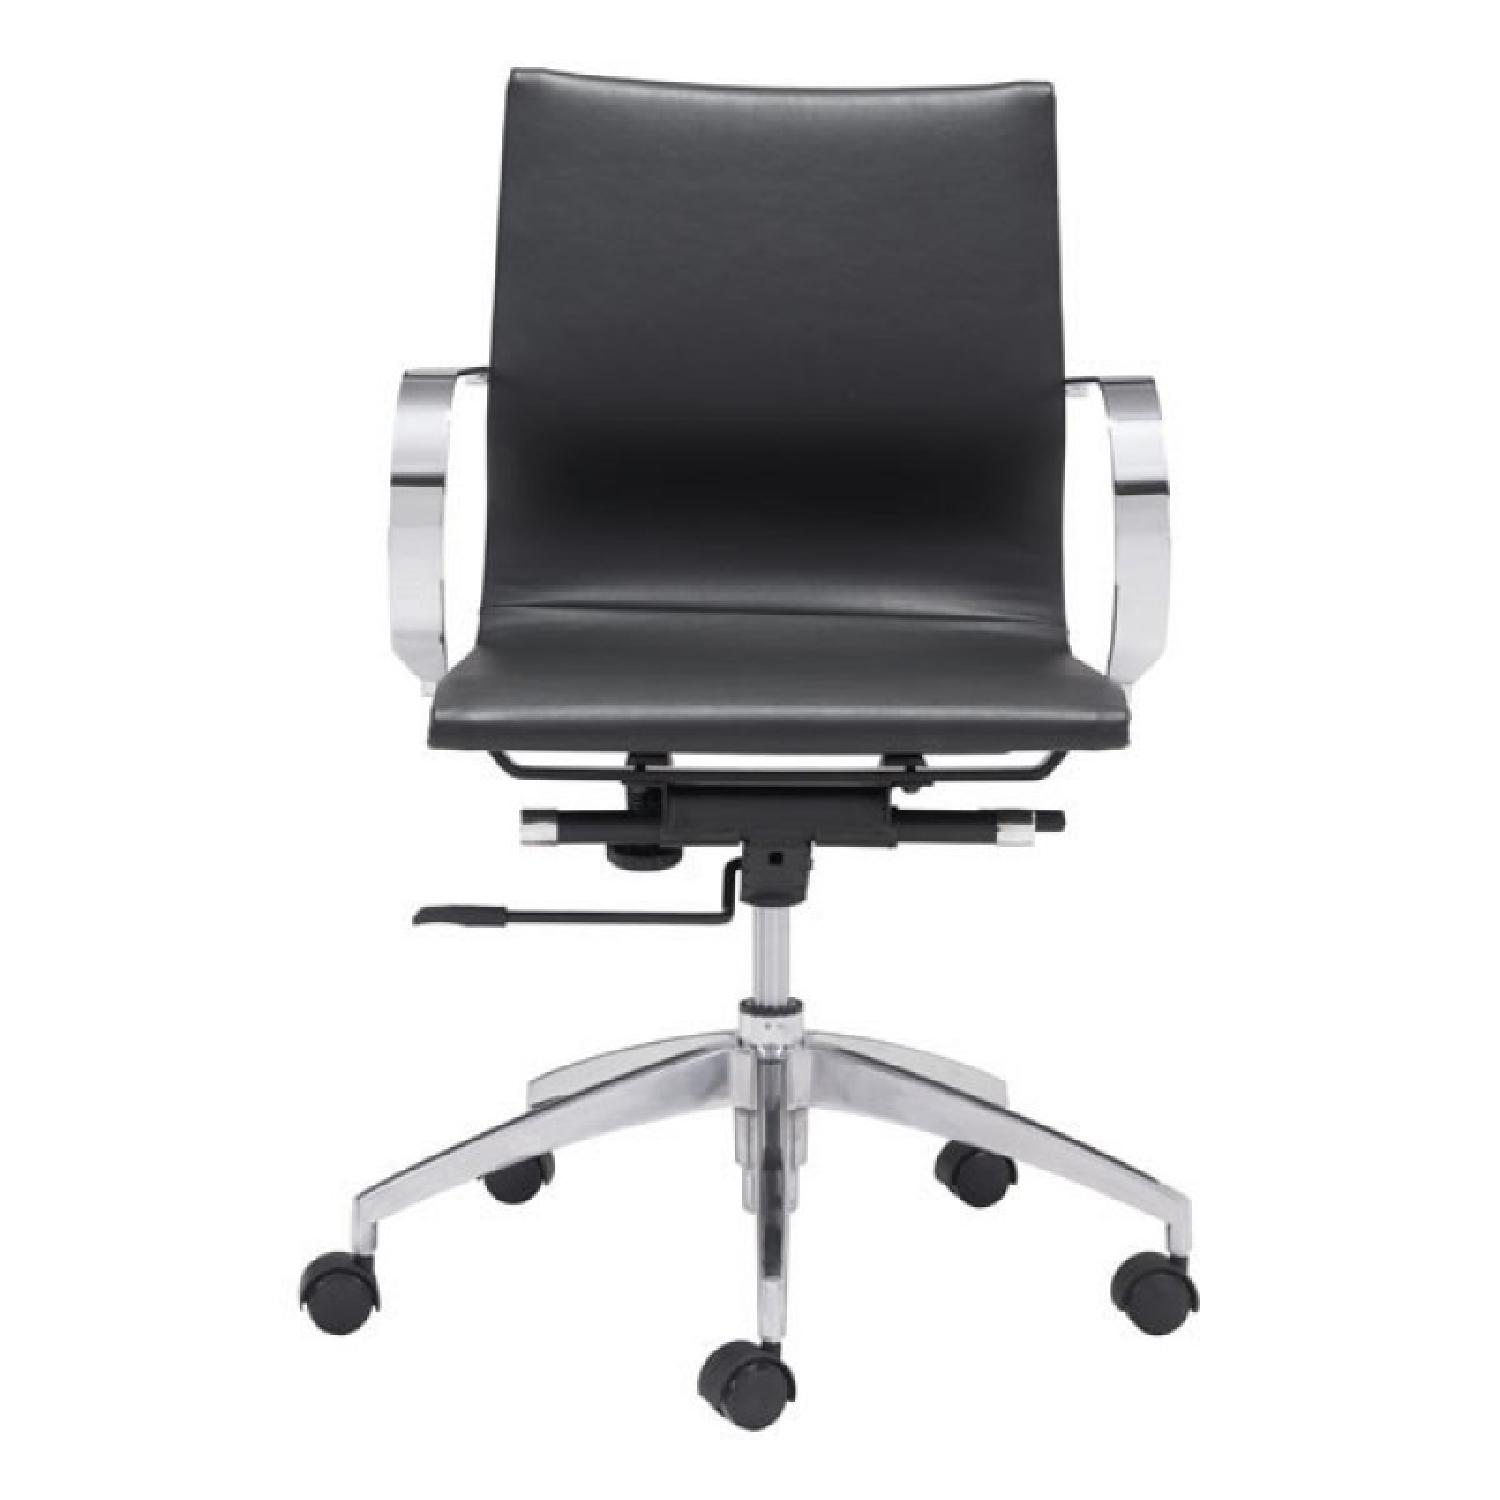 Low Back Office Chair Manhattan Home Design Black Low Back Office Chair